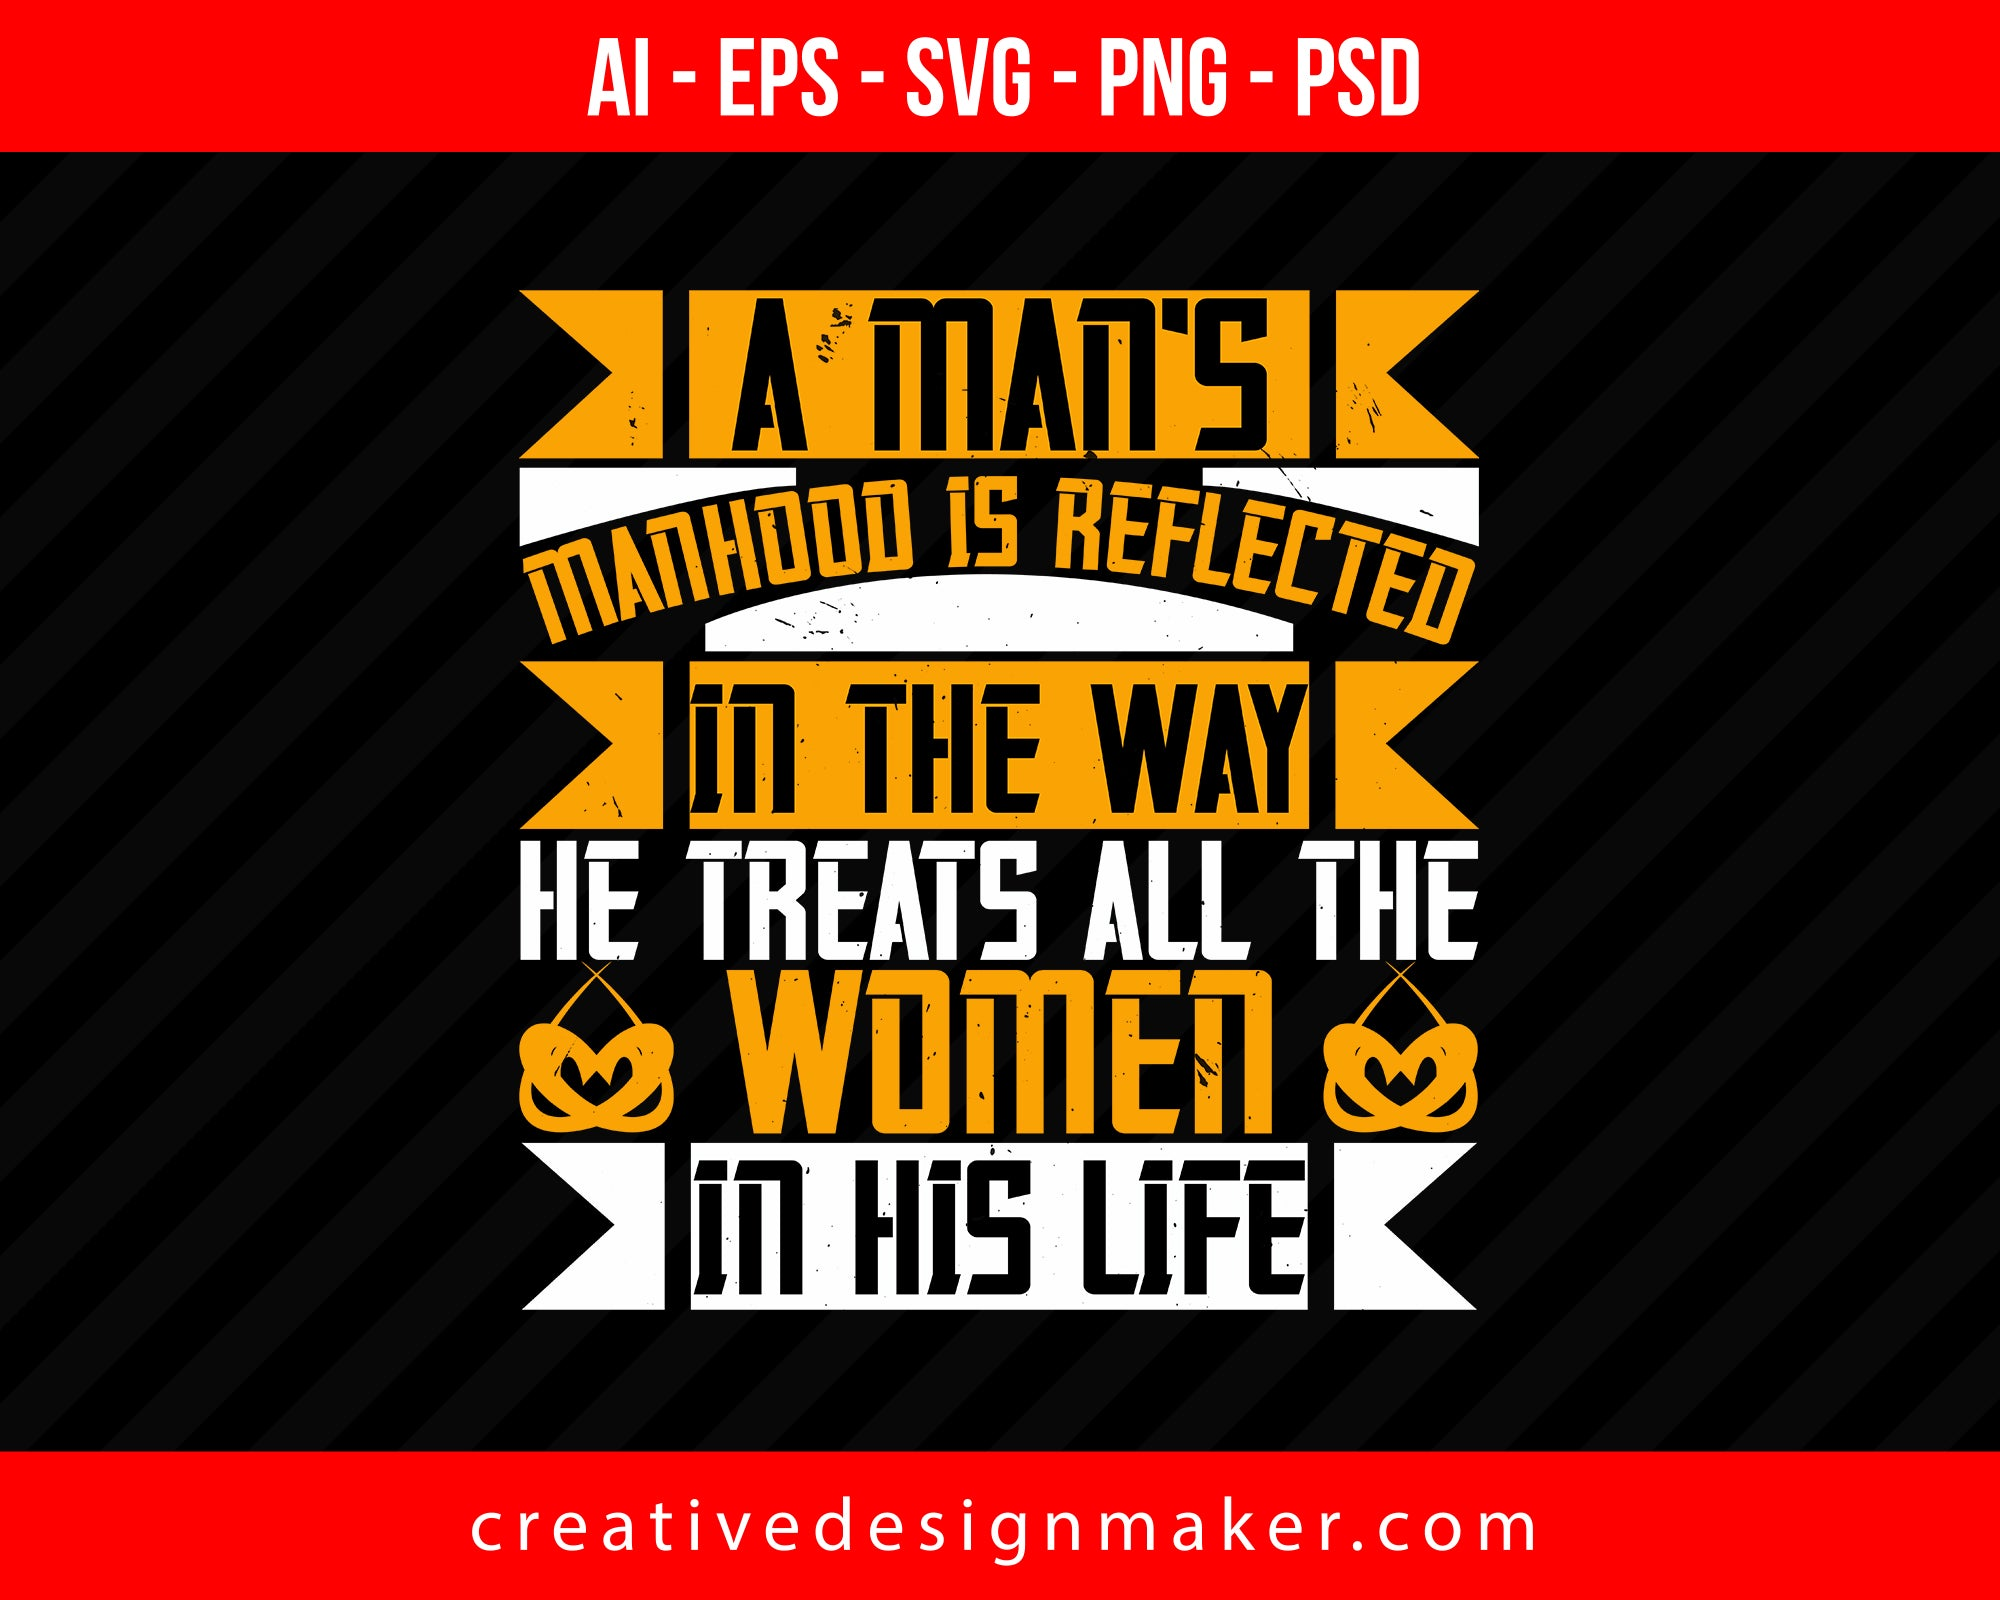 A man's manhood is reflected in the way, he treats all the women in his life Print Ready Editable T-Shirt SVG Design!